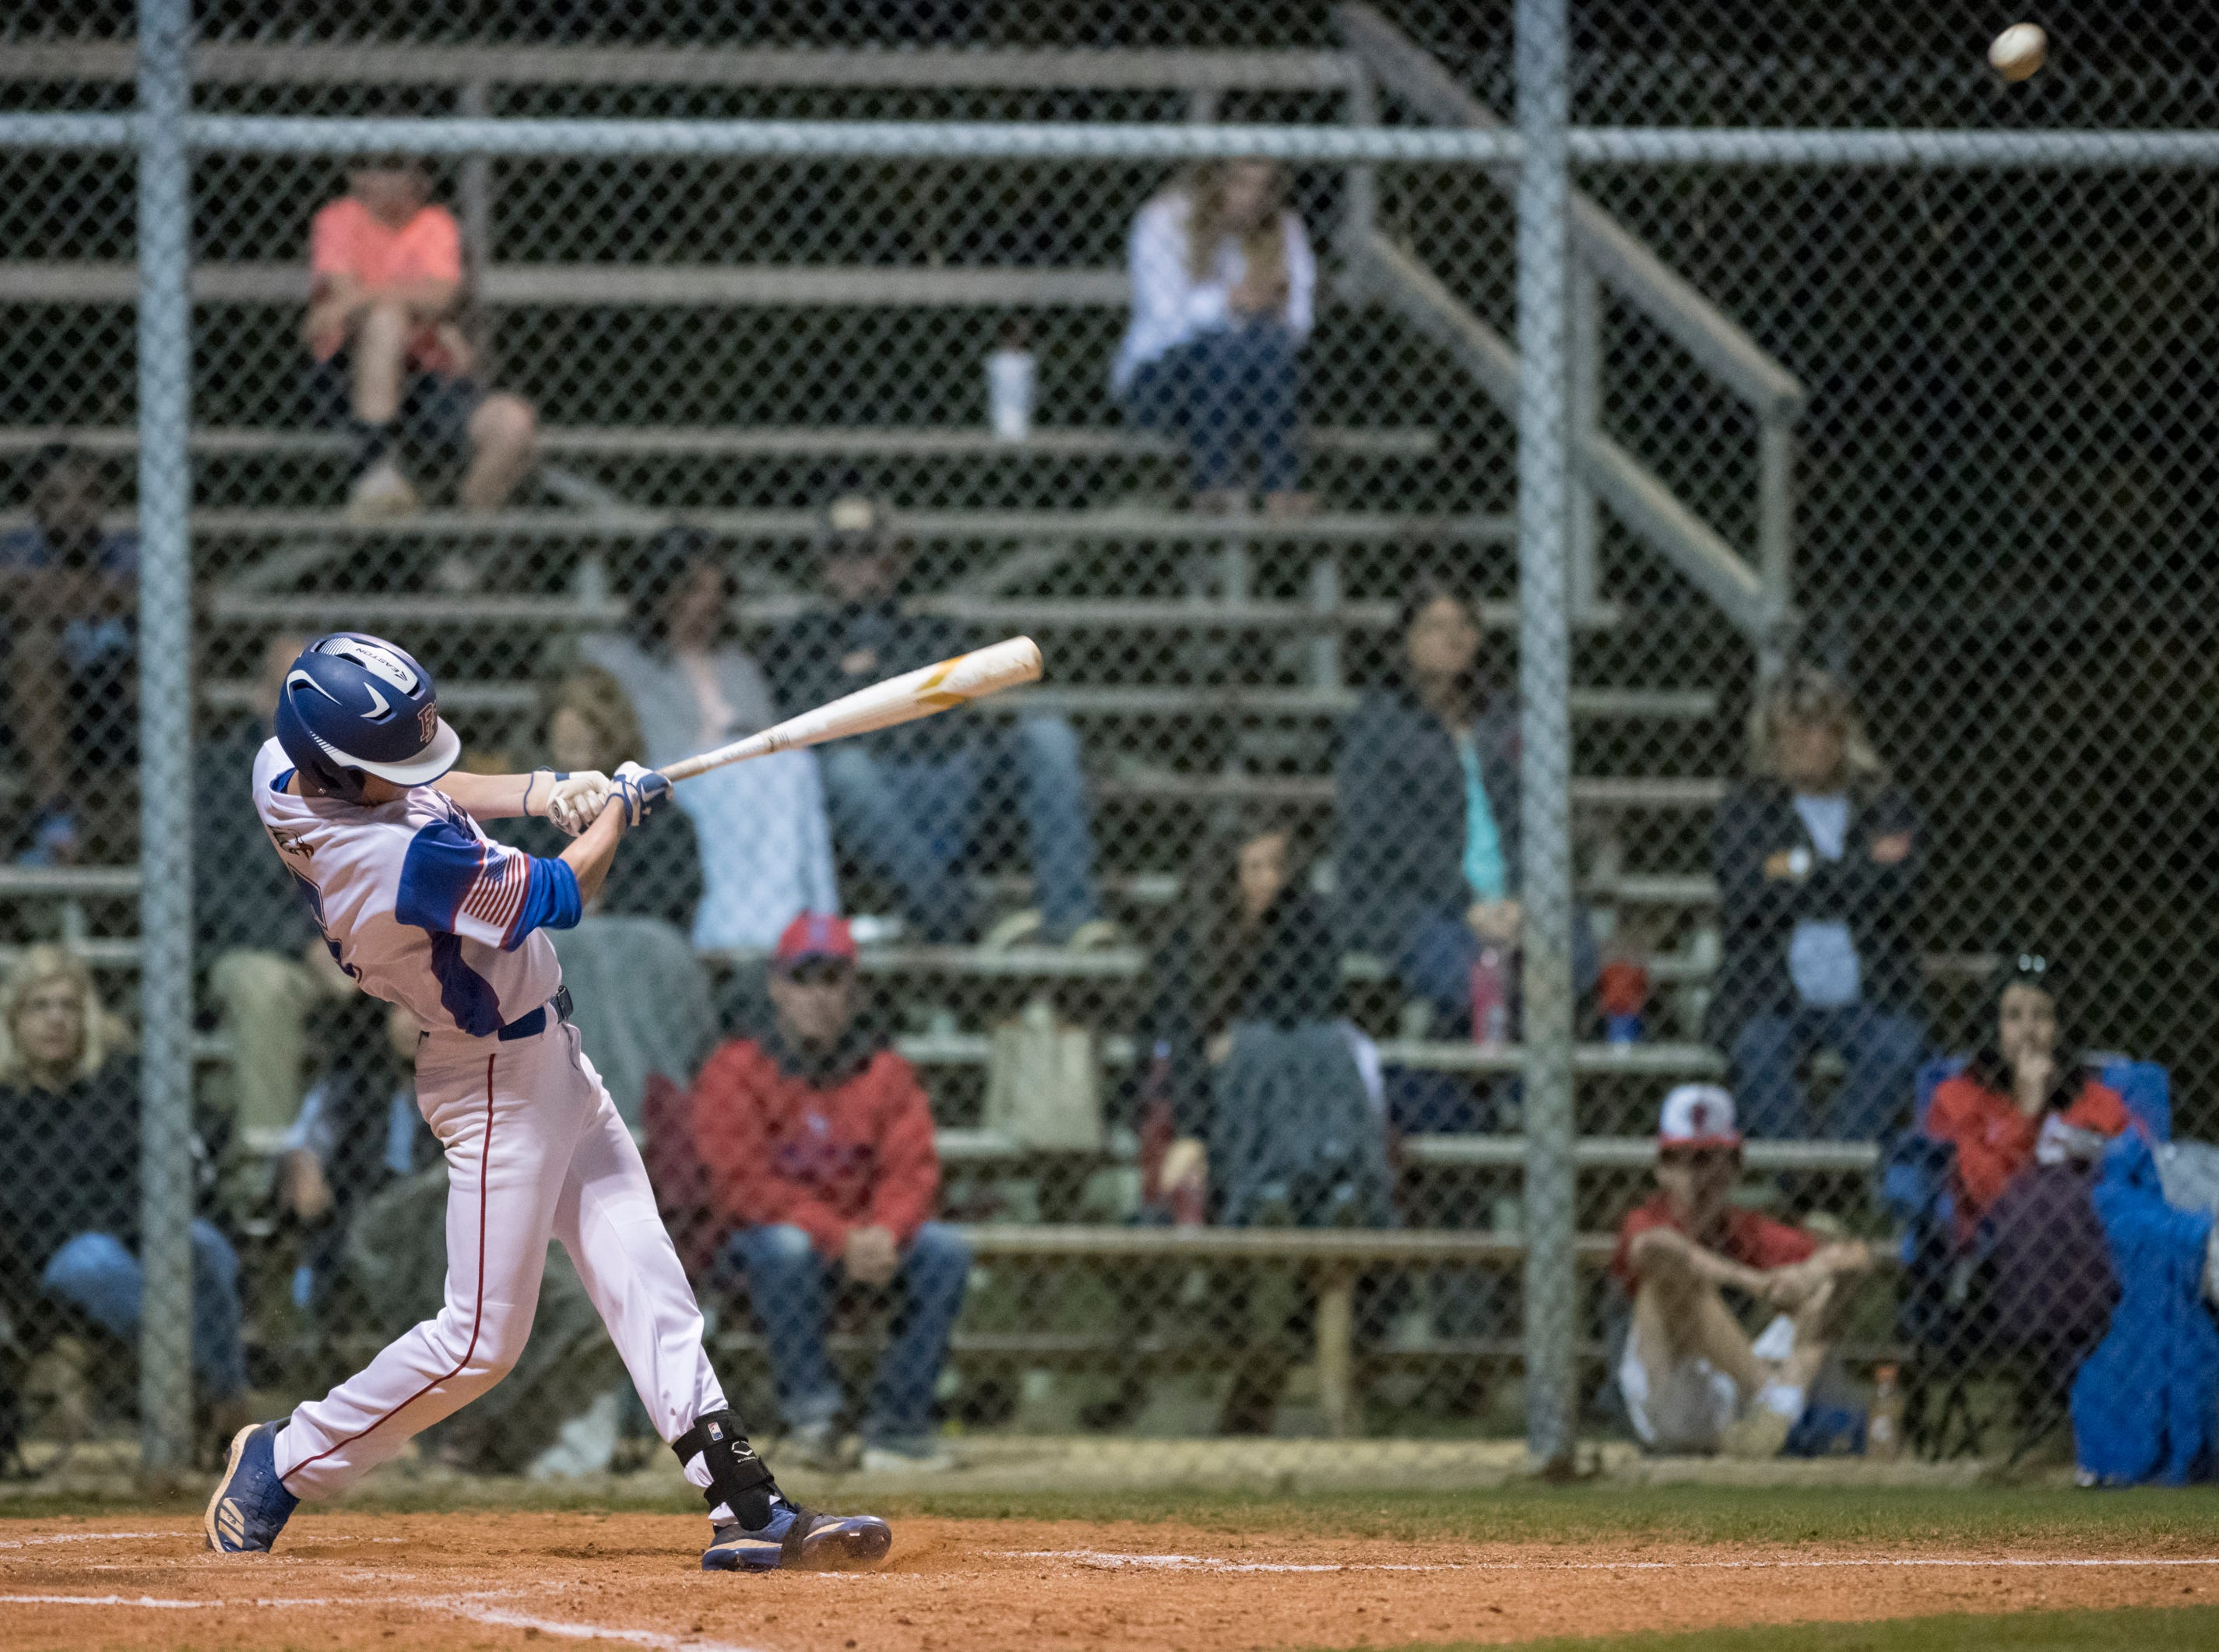 Chase Gullatt (5) makes contact during the Christian Educational Consortium vs Pine Forest baseball game at Pine Forest High School in Pensacola on Wednesday, April 3, 2019.